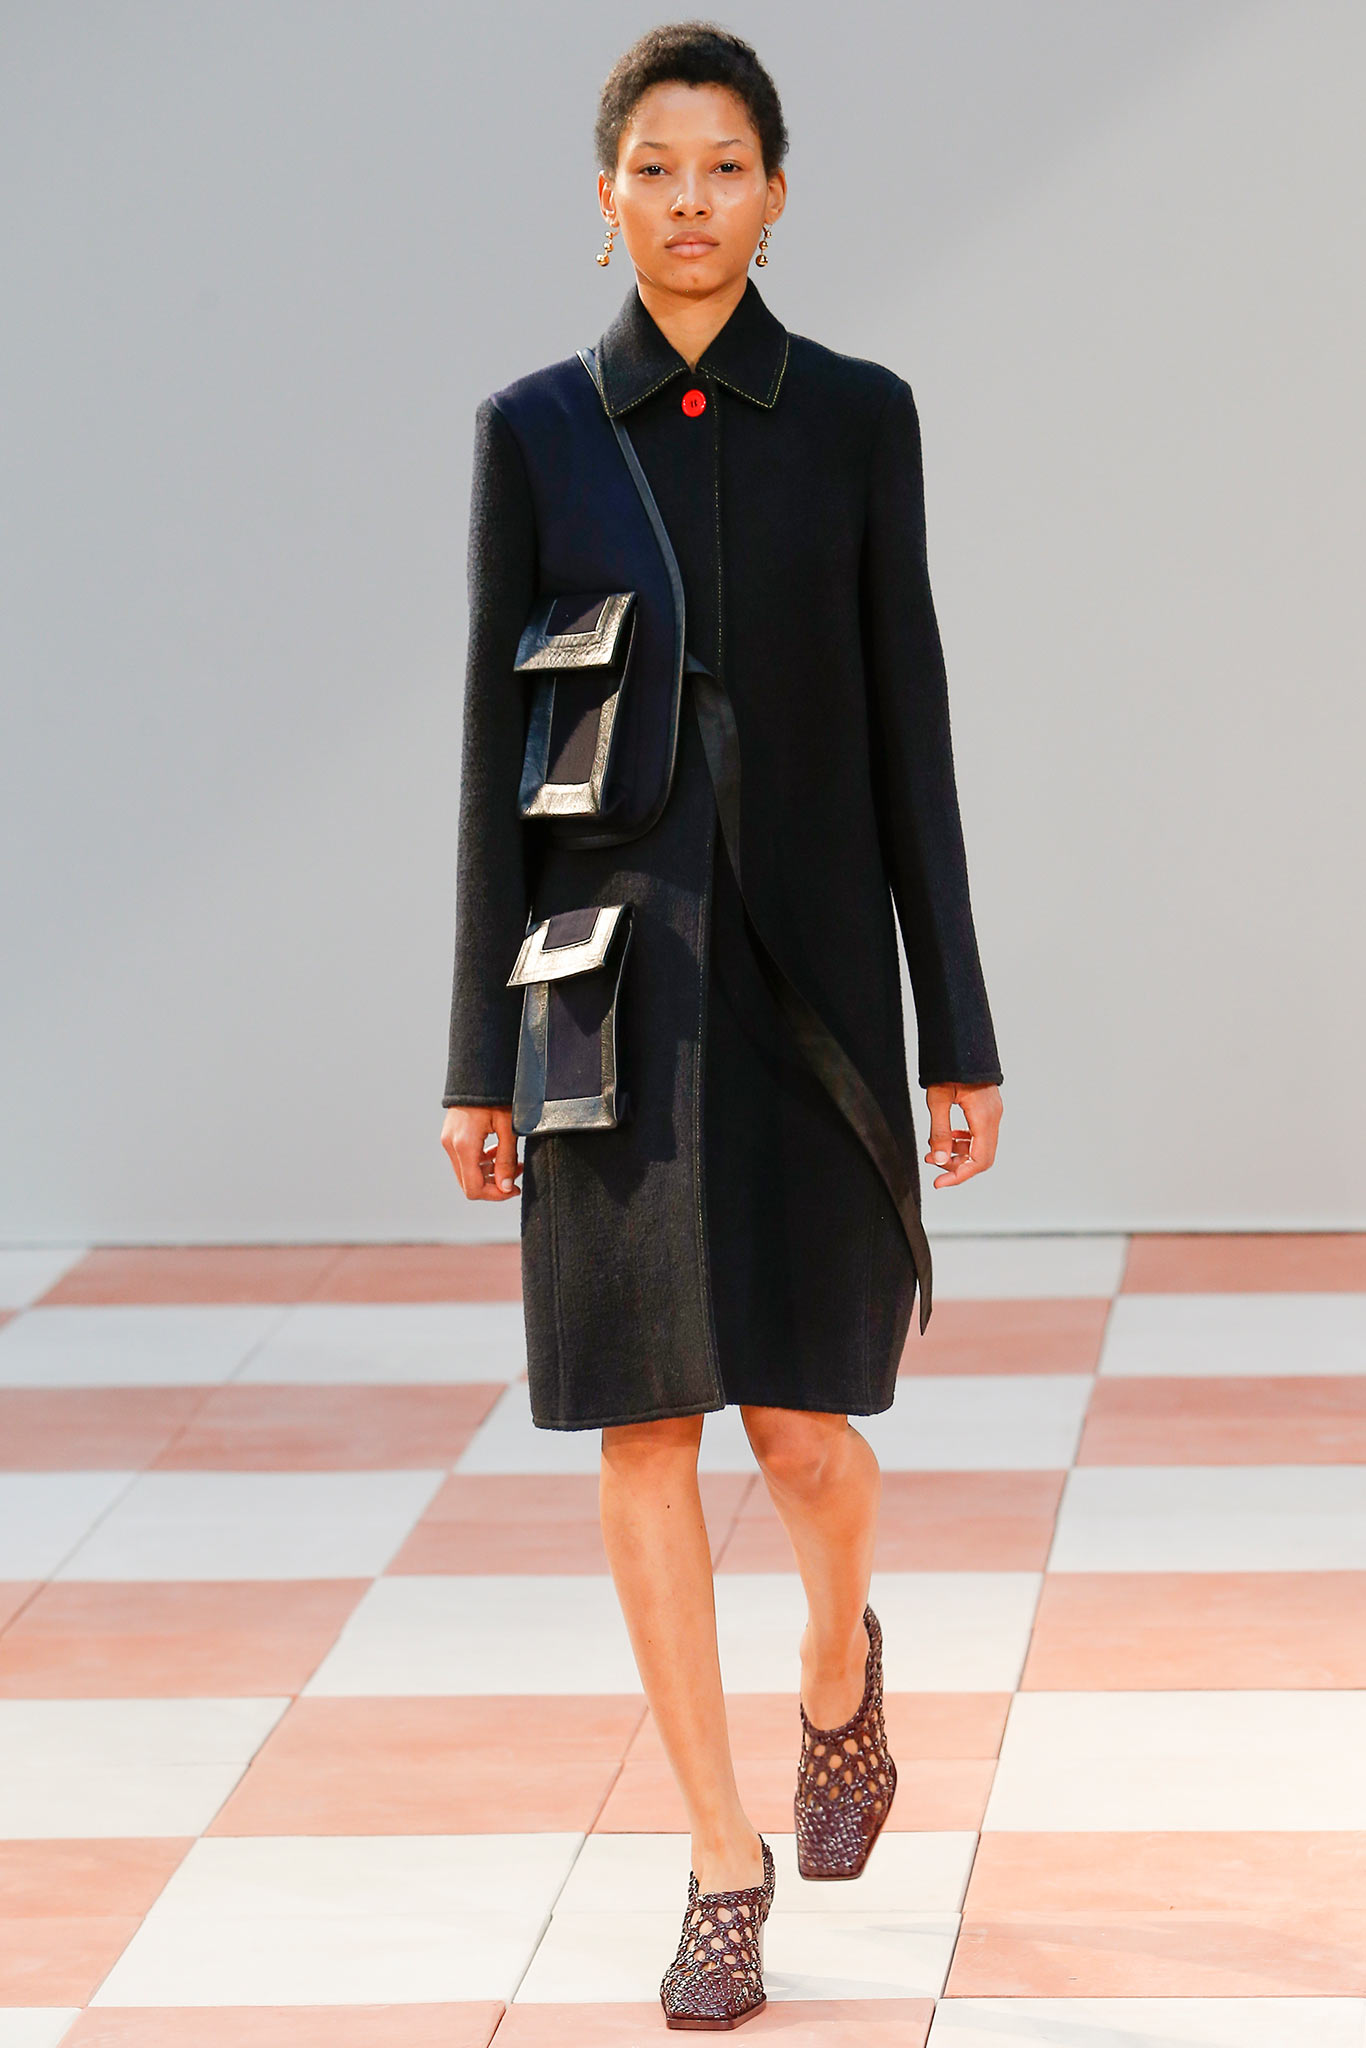 Trini blog | Céline Fall Winter 2015